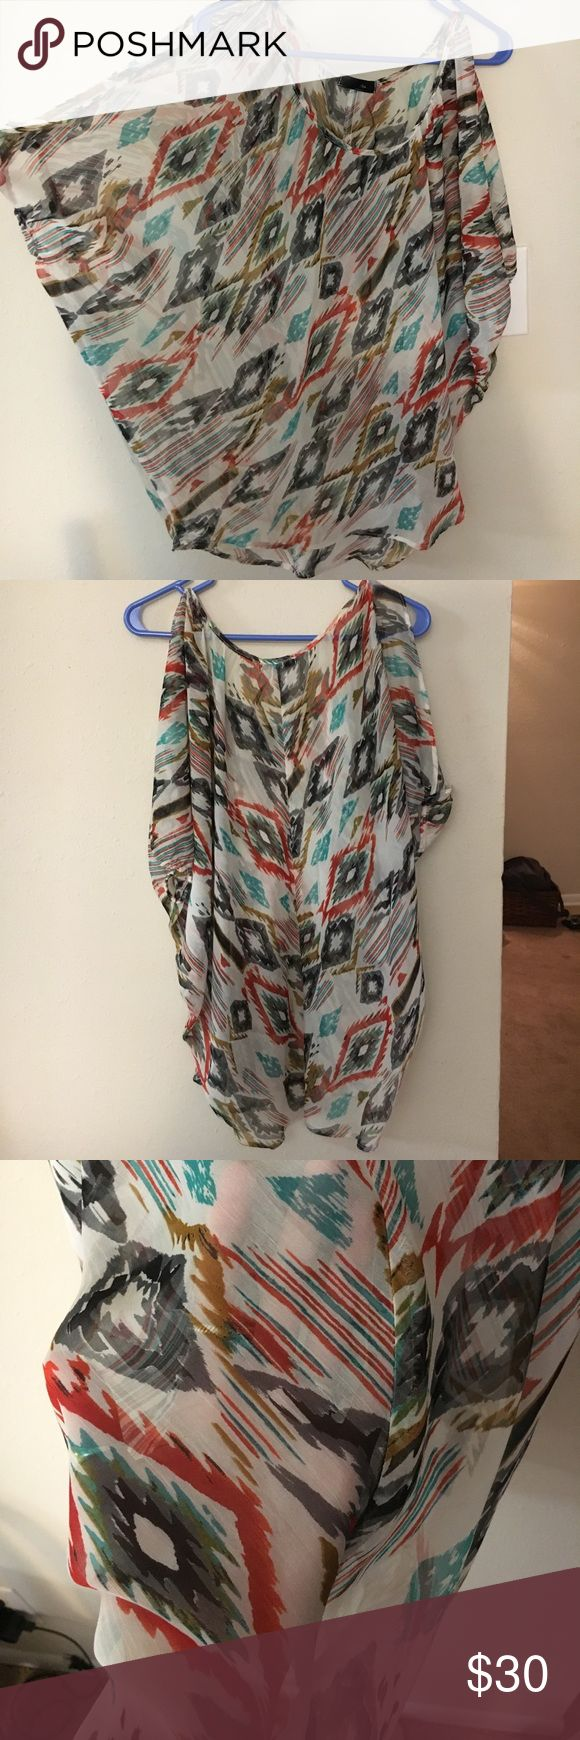 Multi colored, cold shoulder top Sheer. Can be worn as a cover up Tops Blouses